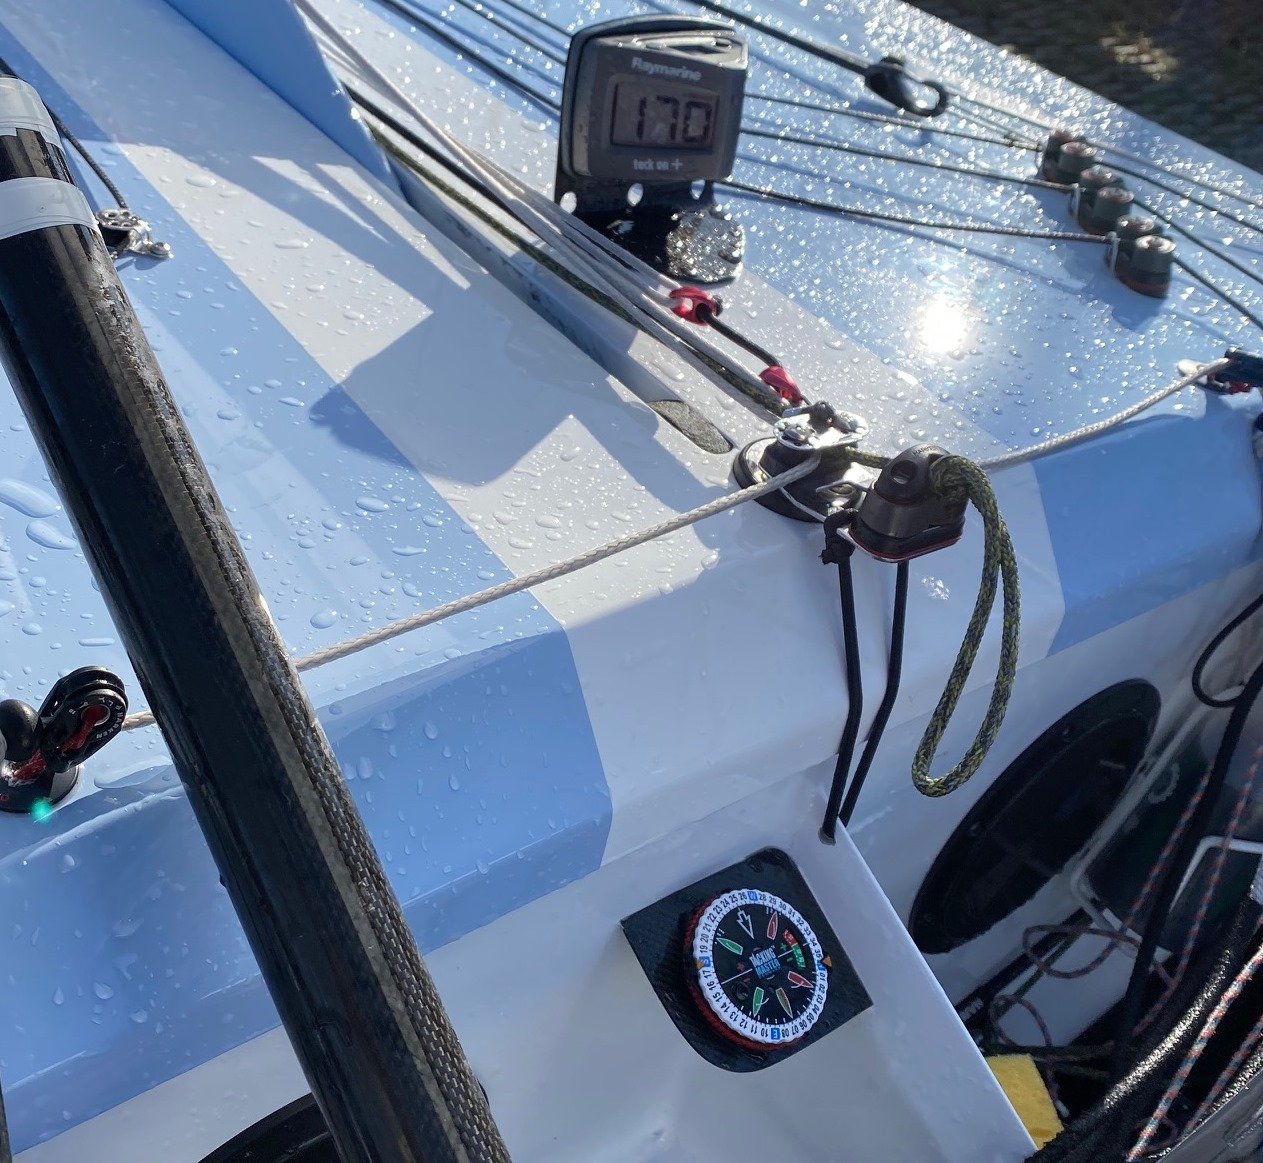 TackingMaster mounted in the latest and fabulous OK Dinghy